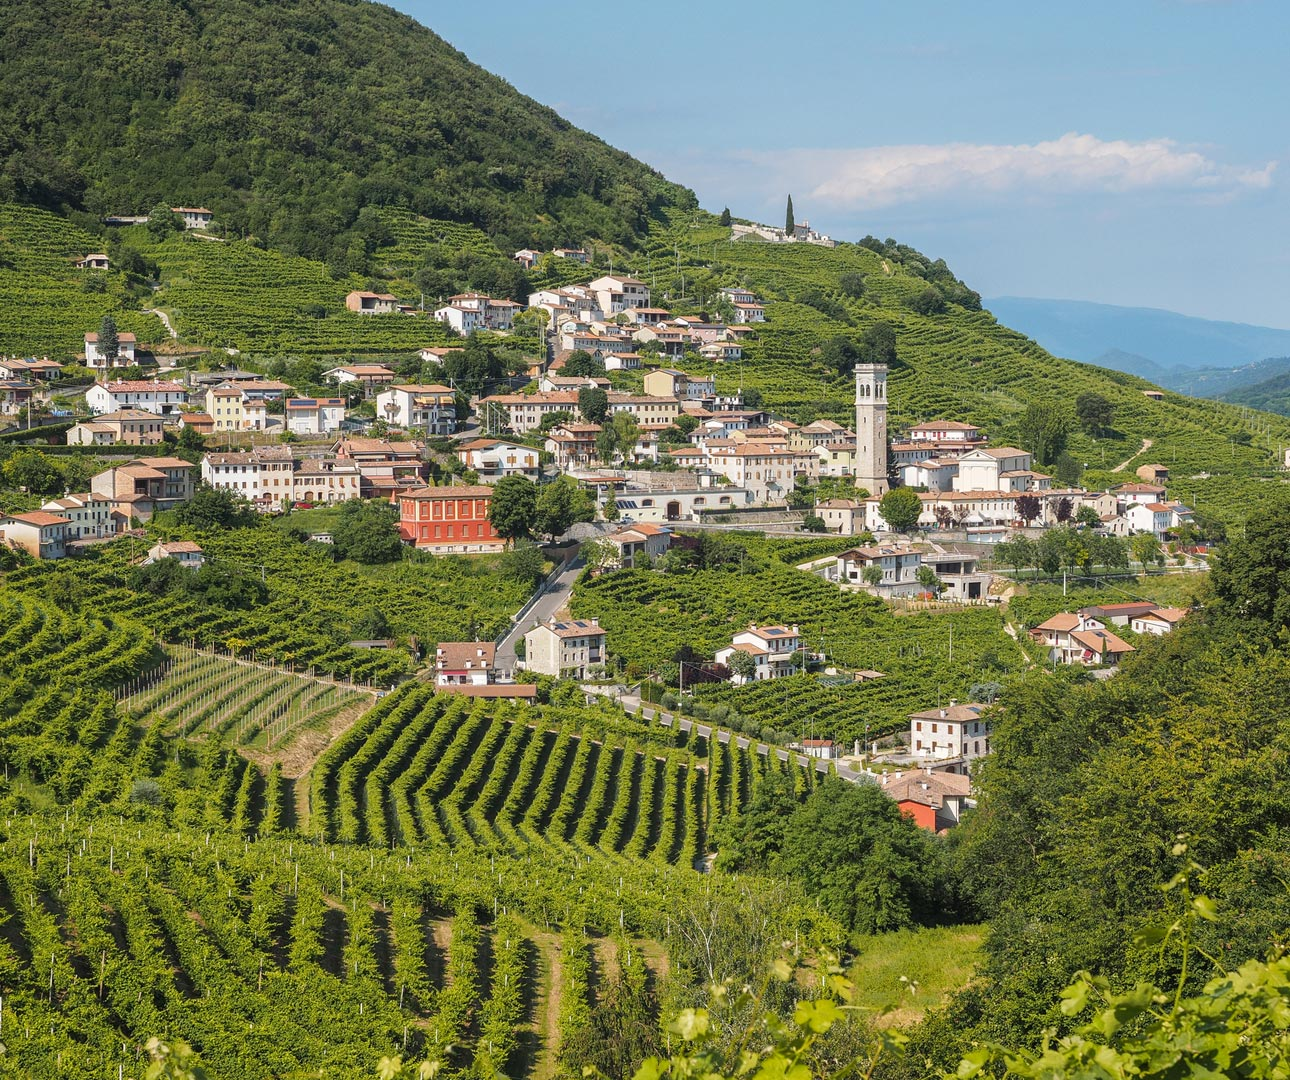 Valdobbiadene town and vineyard